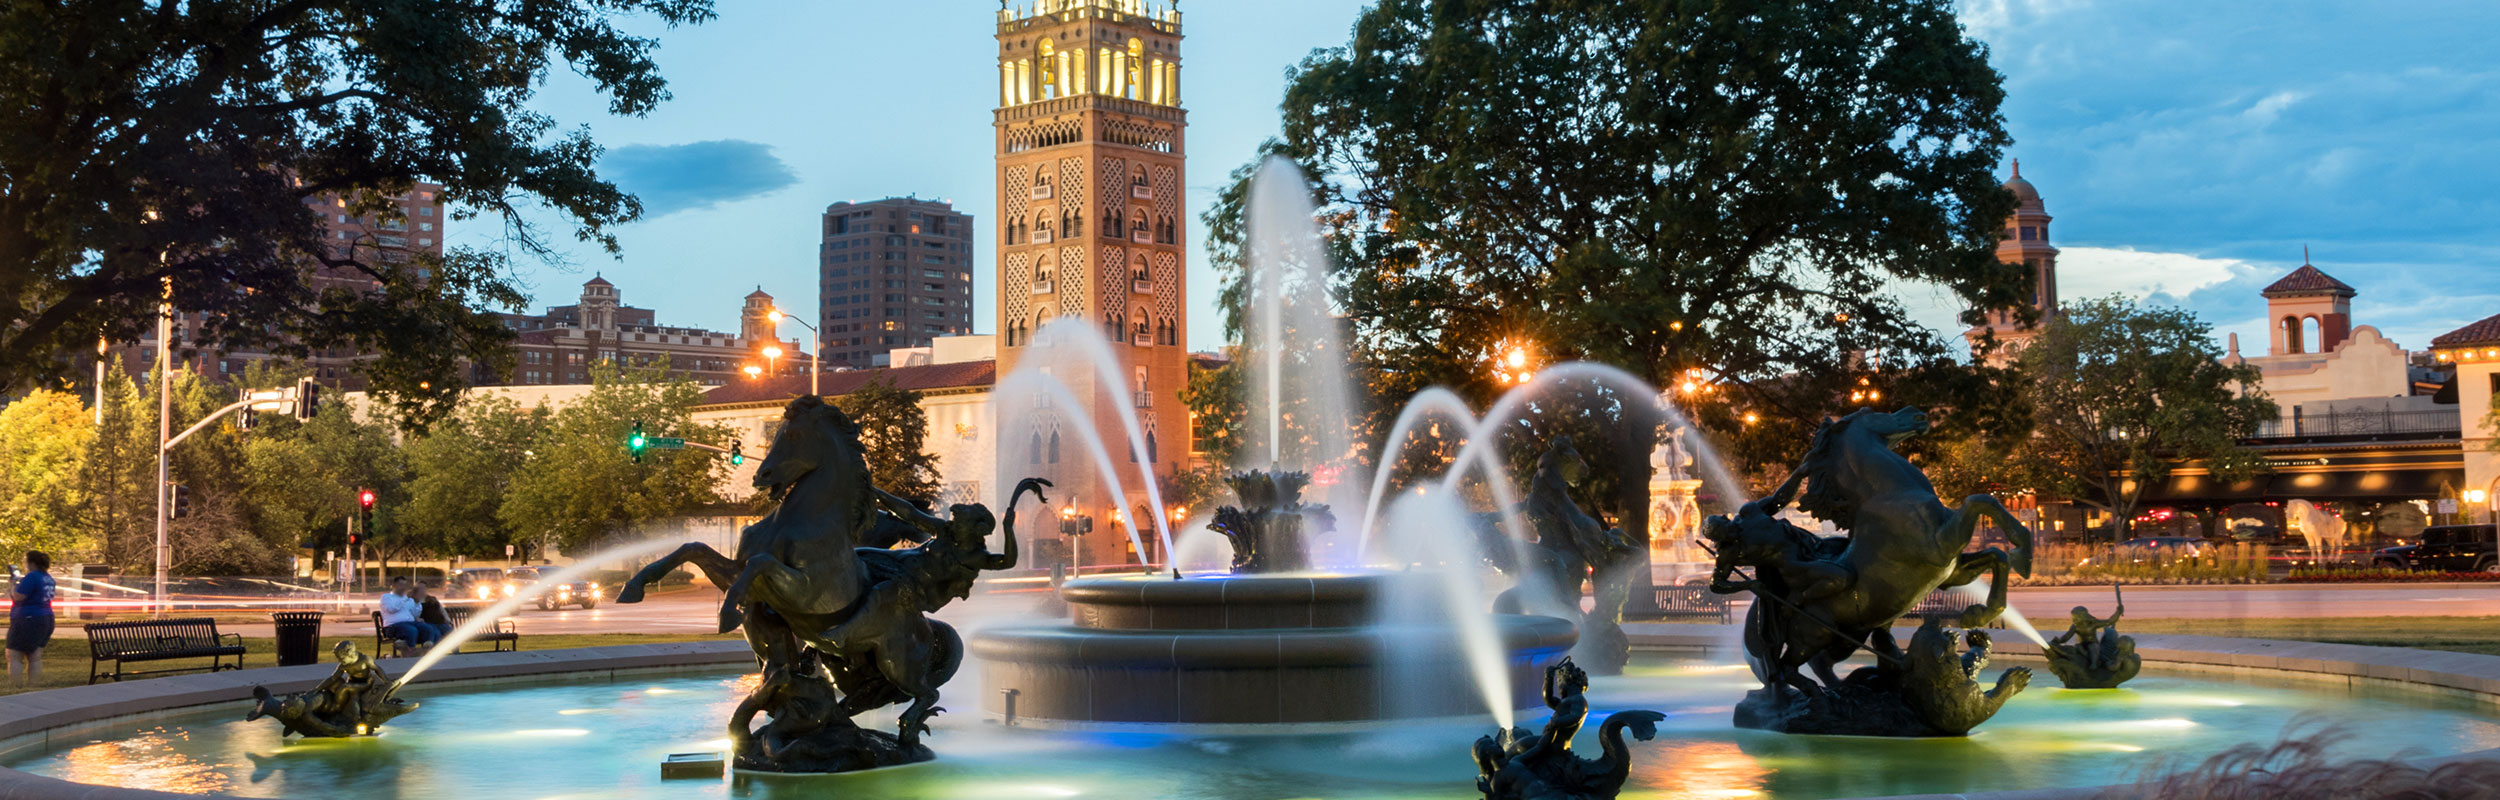 Fountain and buildings on the Plaza in Kansas City, Missouri